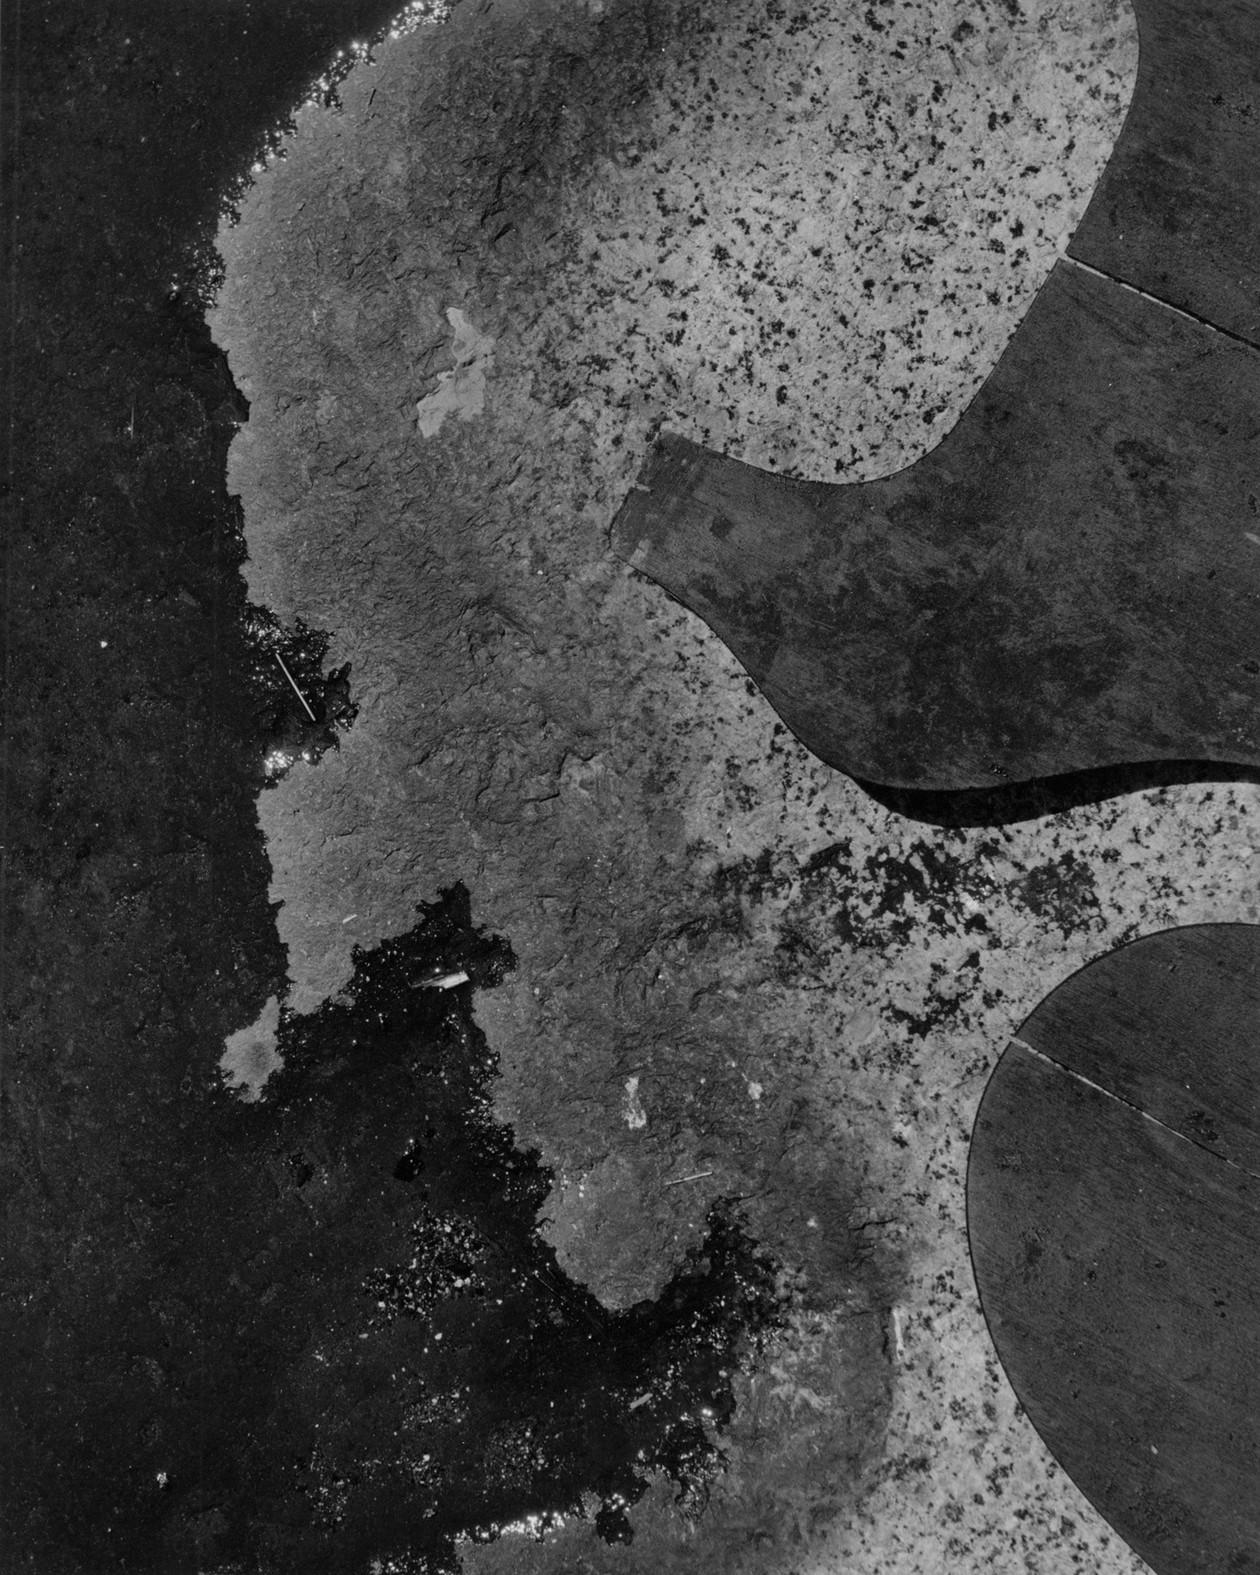 Untitled (wood pieces and water) (1940s) by Aaron Siskind